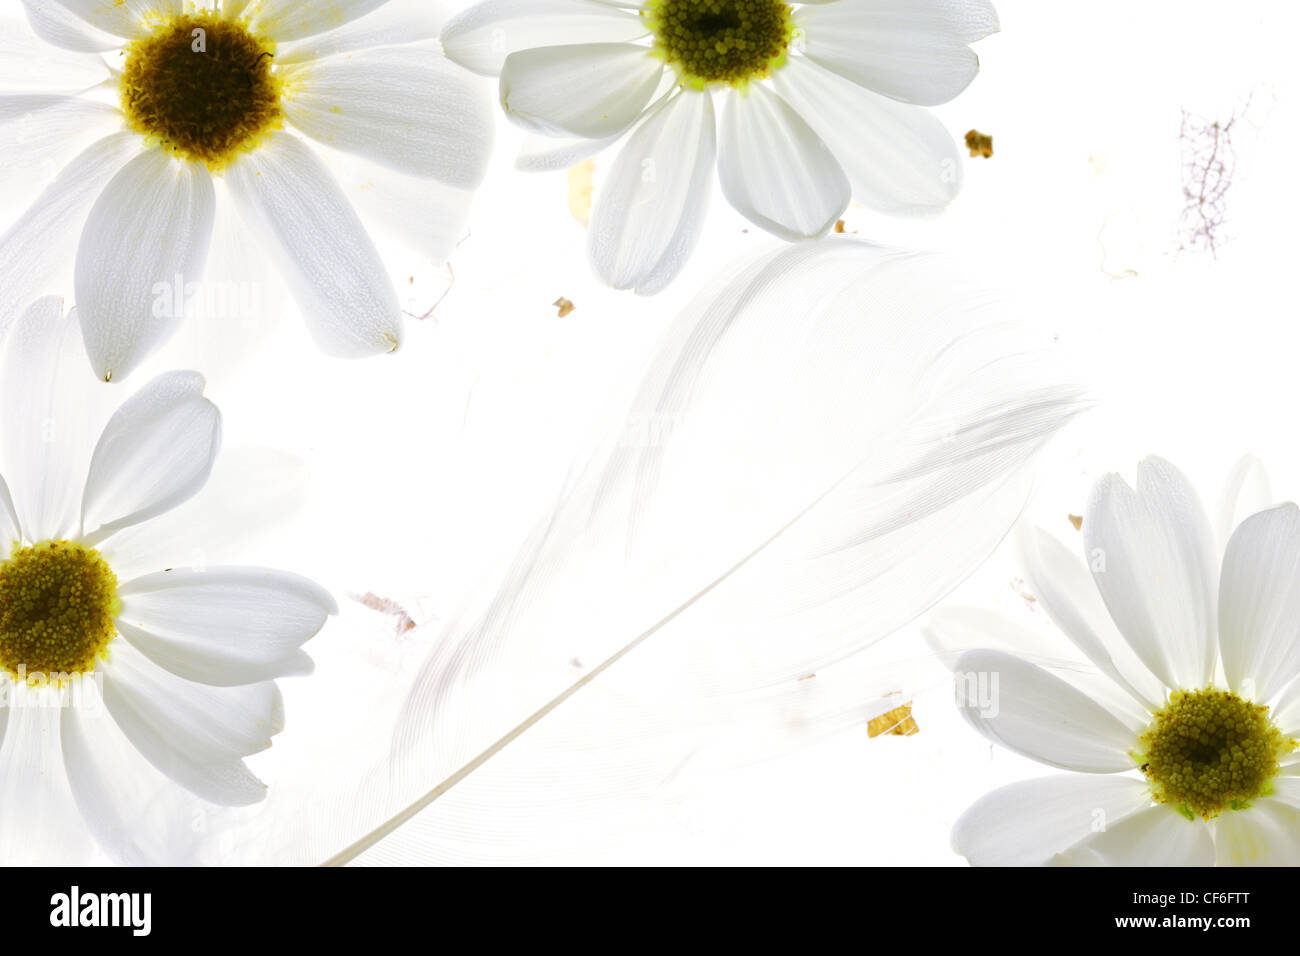 White daisy petals with feather on white background Stock Photo